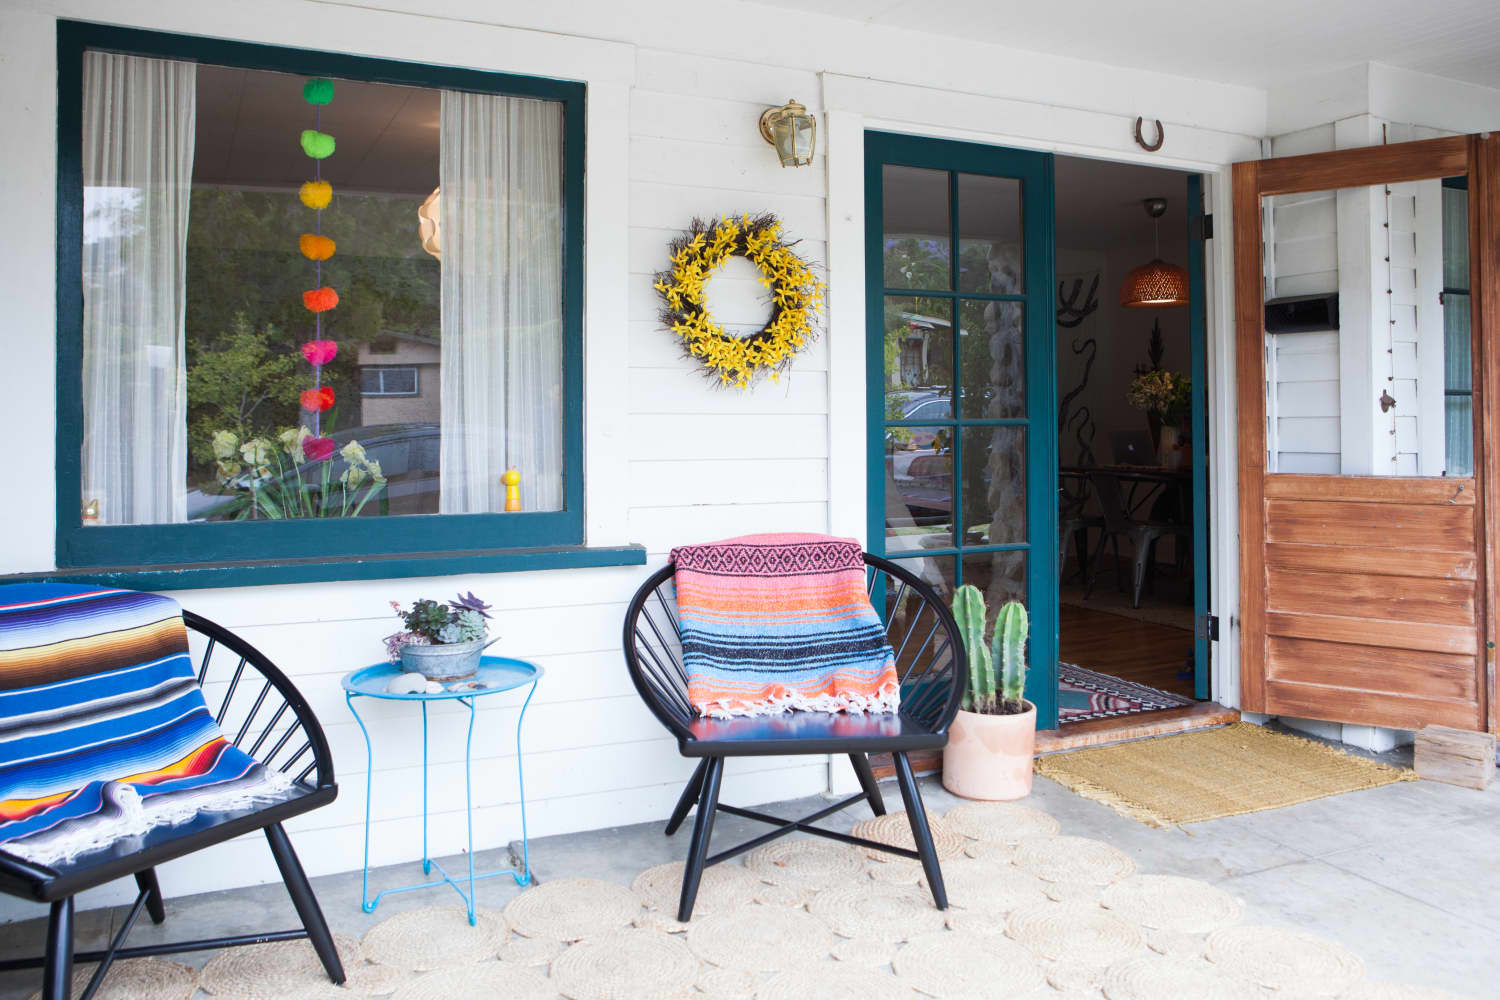 Where to Buy Affordable Outdoor Furniture - 10 Cheap Patio ...